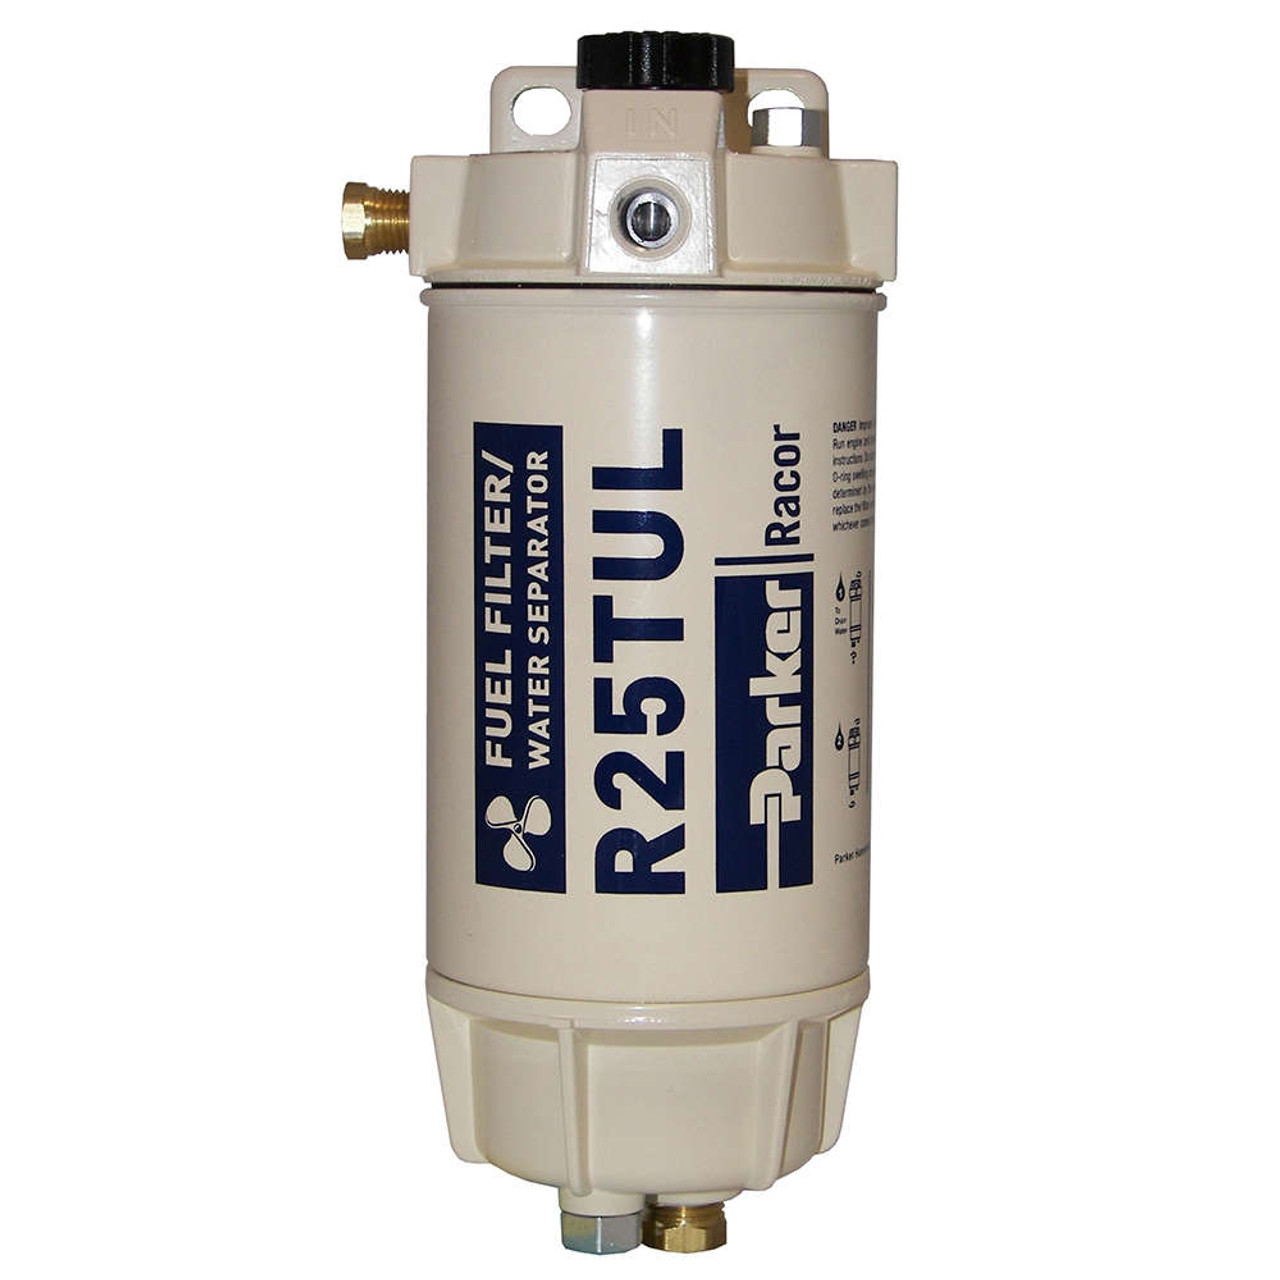 hight resolution of racor 1 4 in 45 gph aquabloc marine spin on type diesel fuel